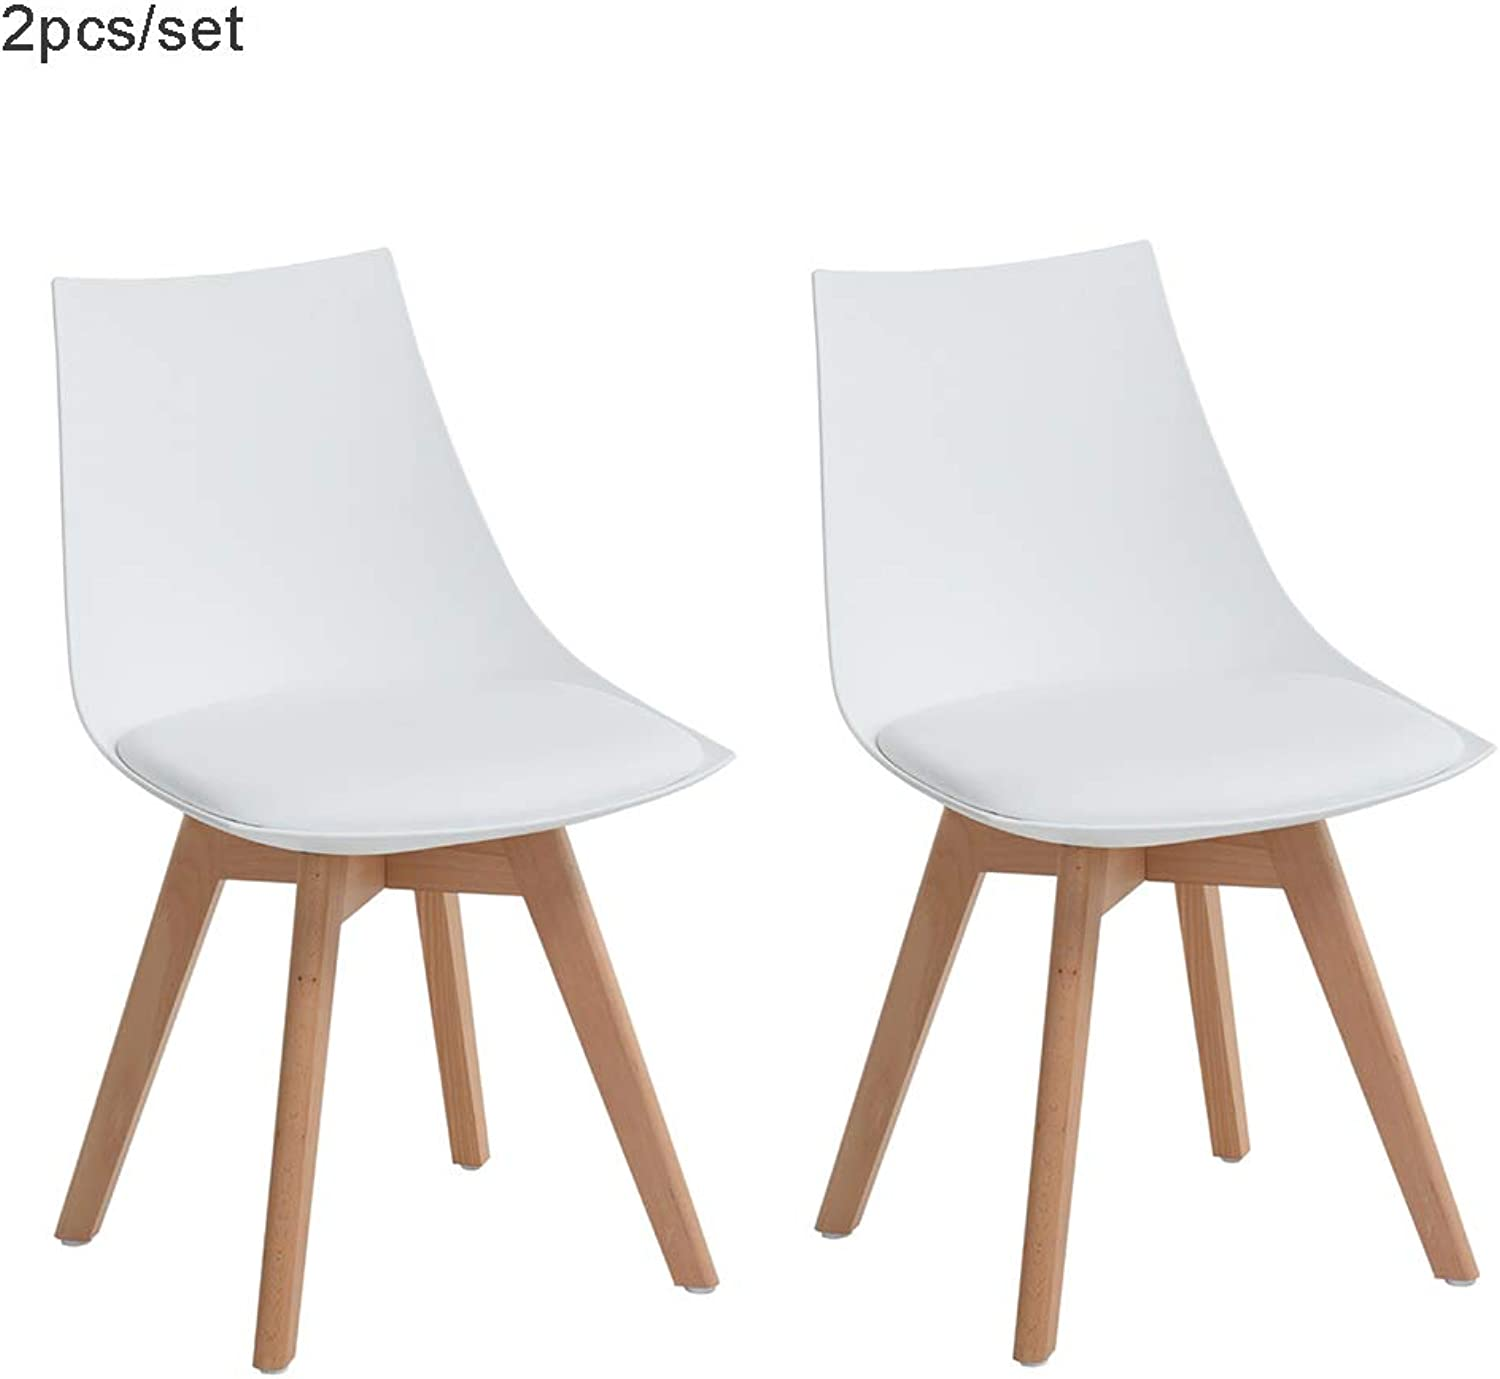 FurnitureR Dining Chairs Set of 2 Modern Style White Upholstered Chairs for Kitchen Dining Living Room Side Chairs